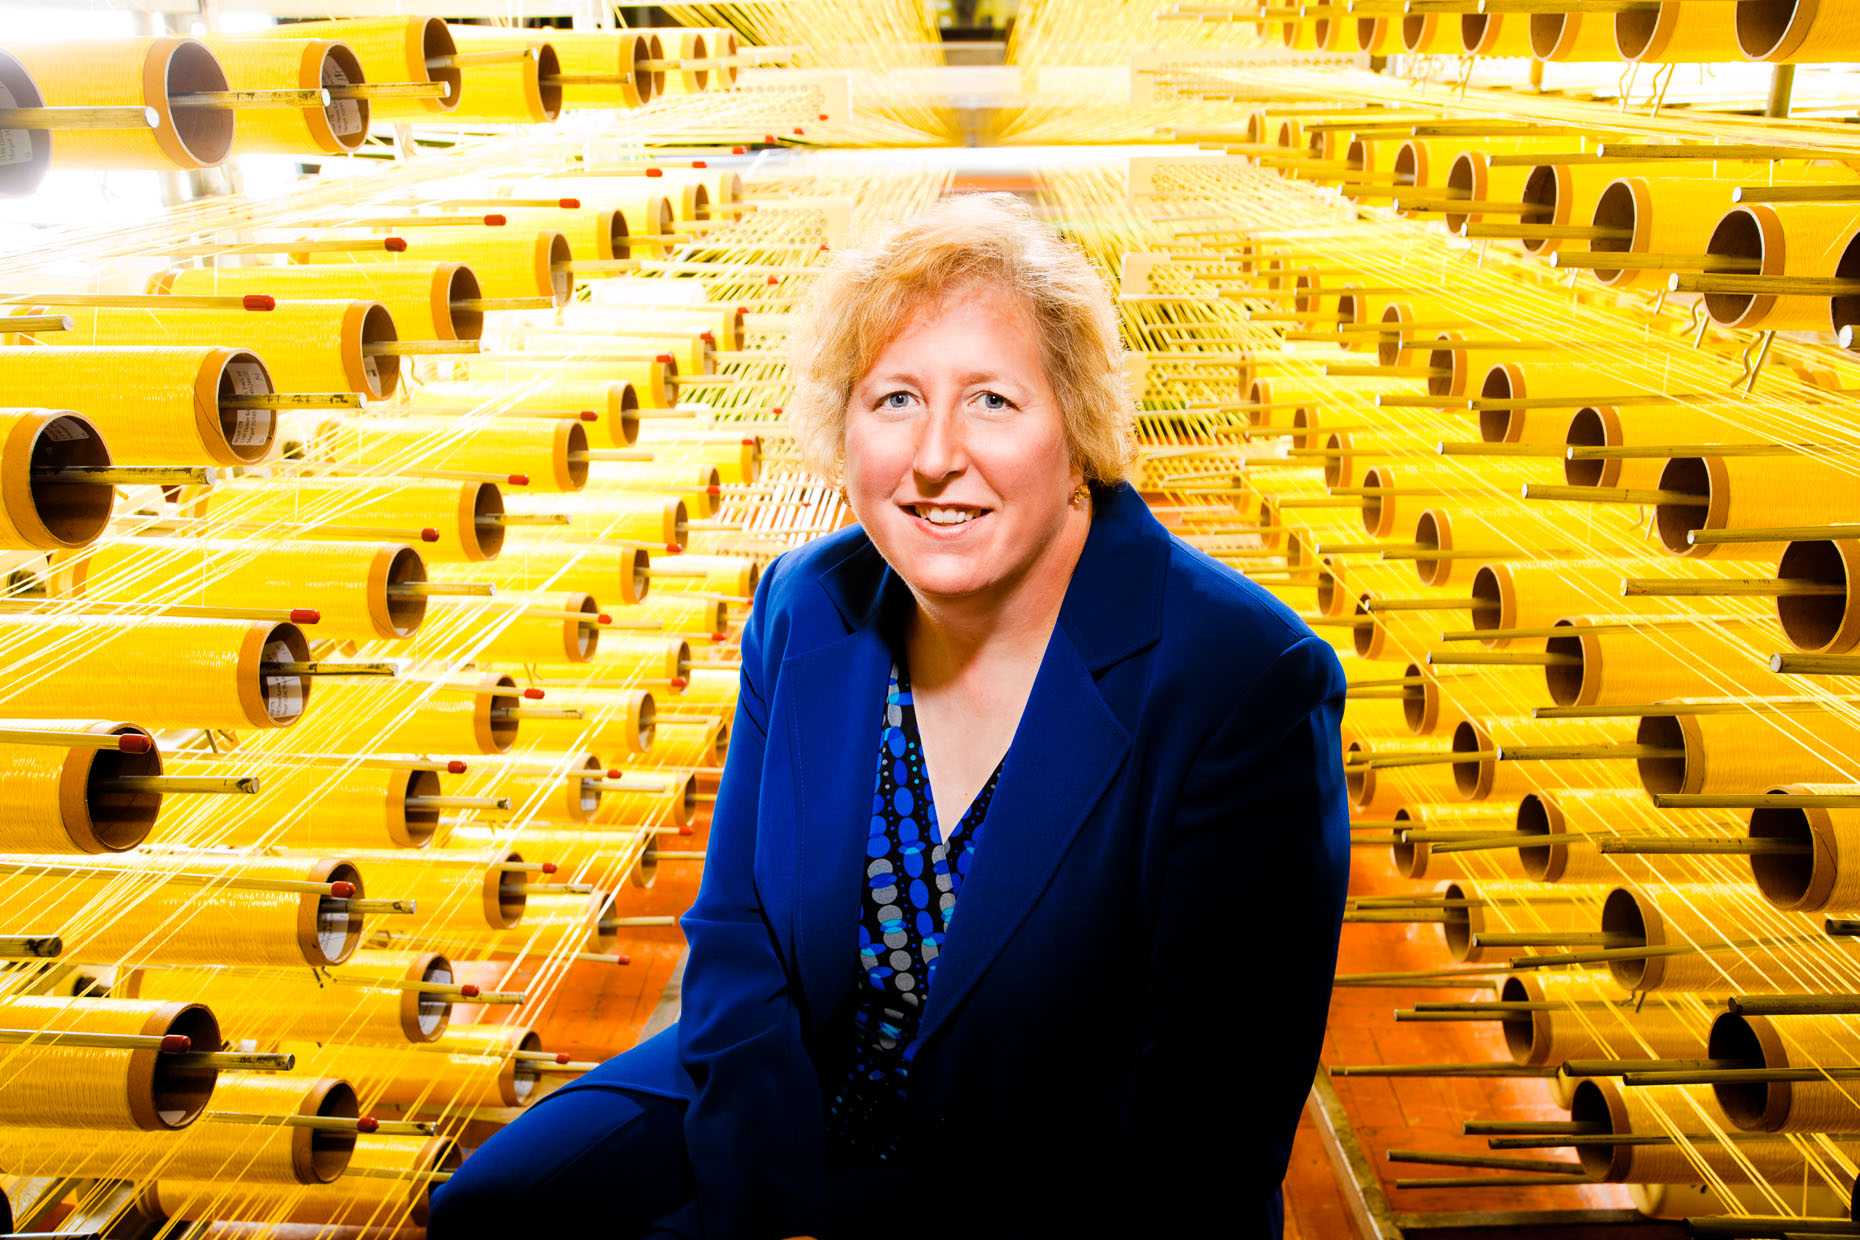 editorial-portraits-woman-yellow-spools